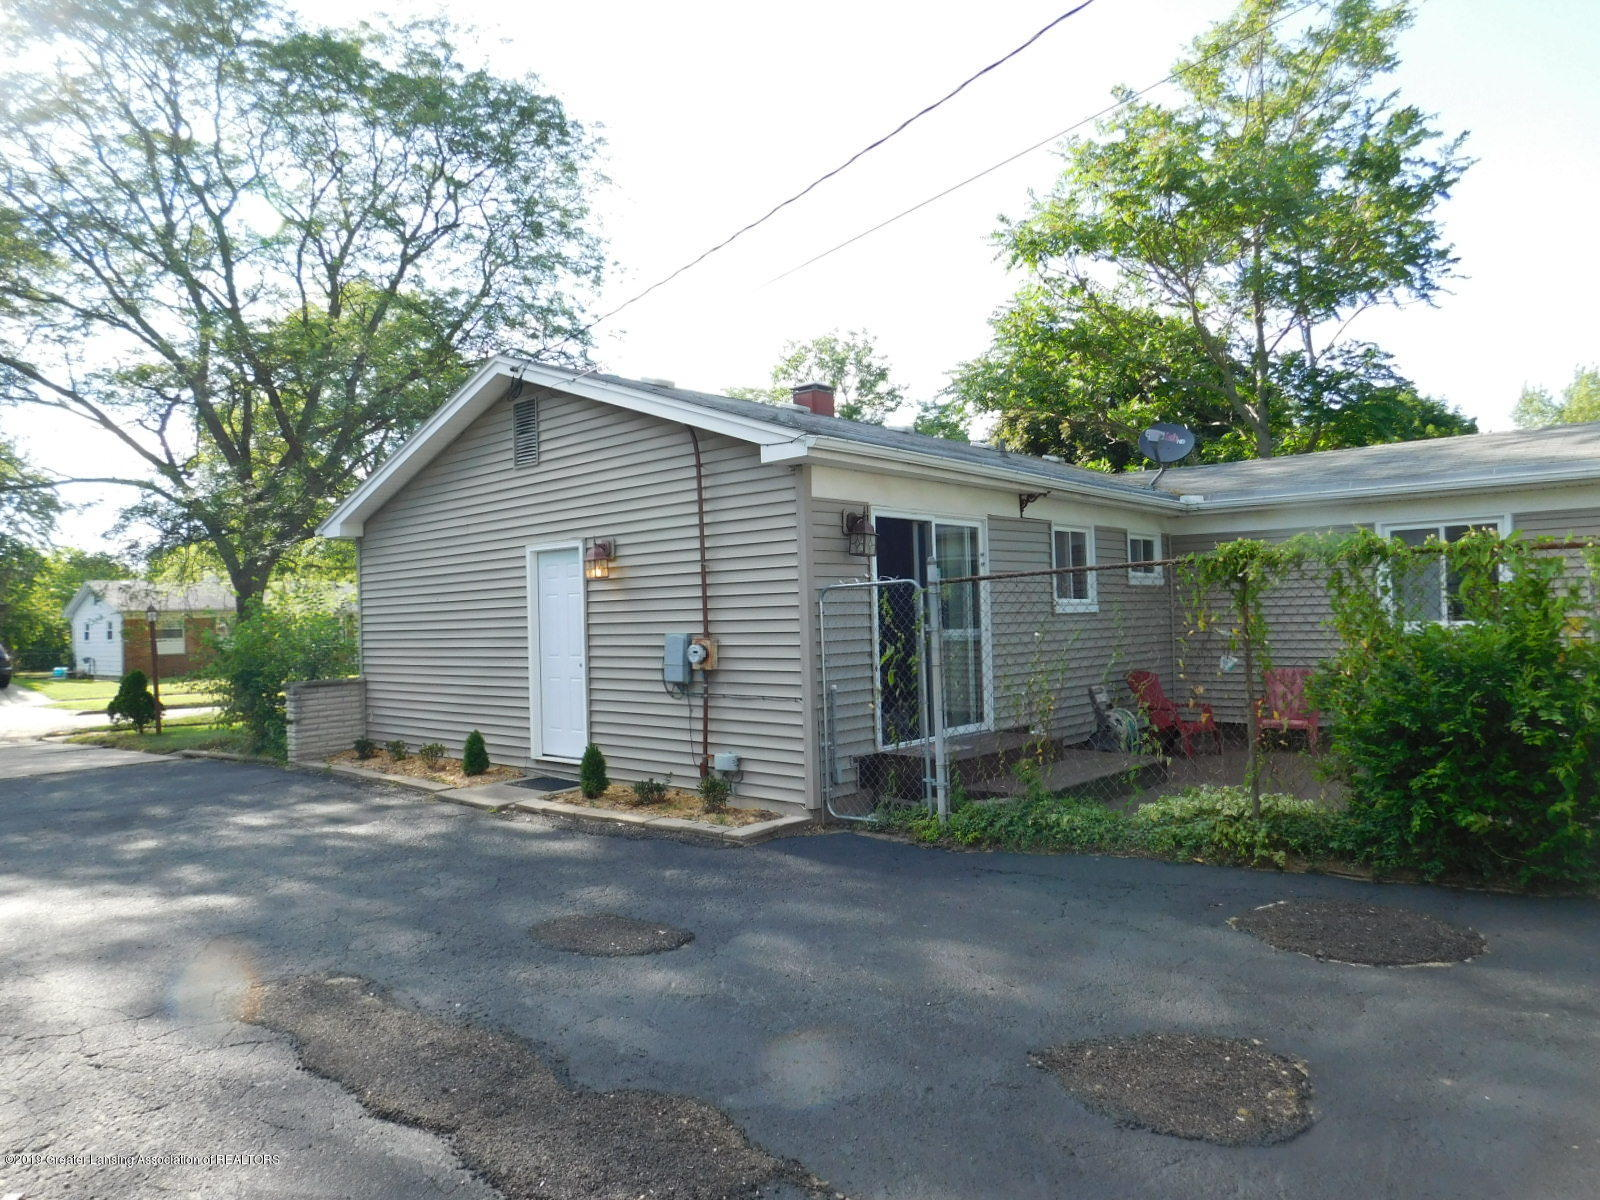 4111 Clayborn Rd - ANOTHER VIEW - 43